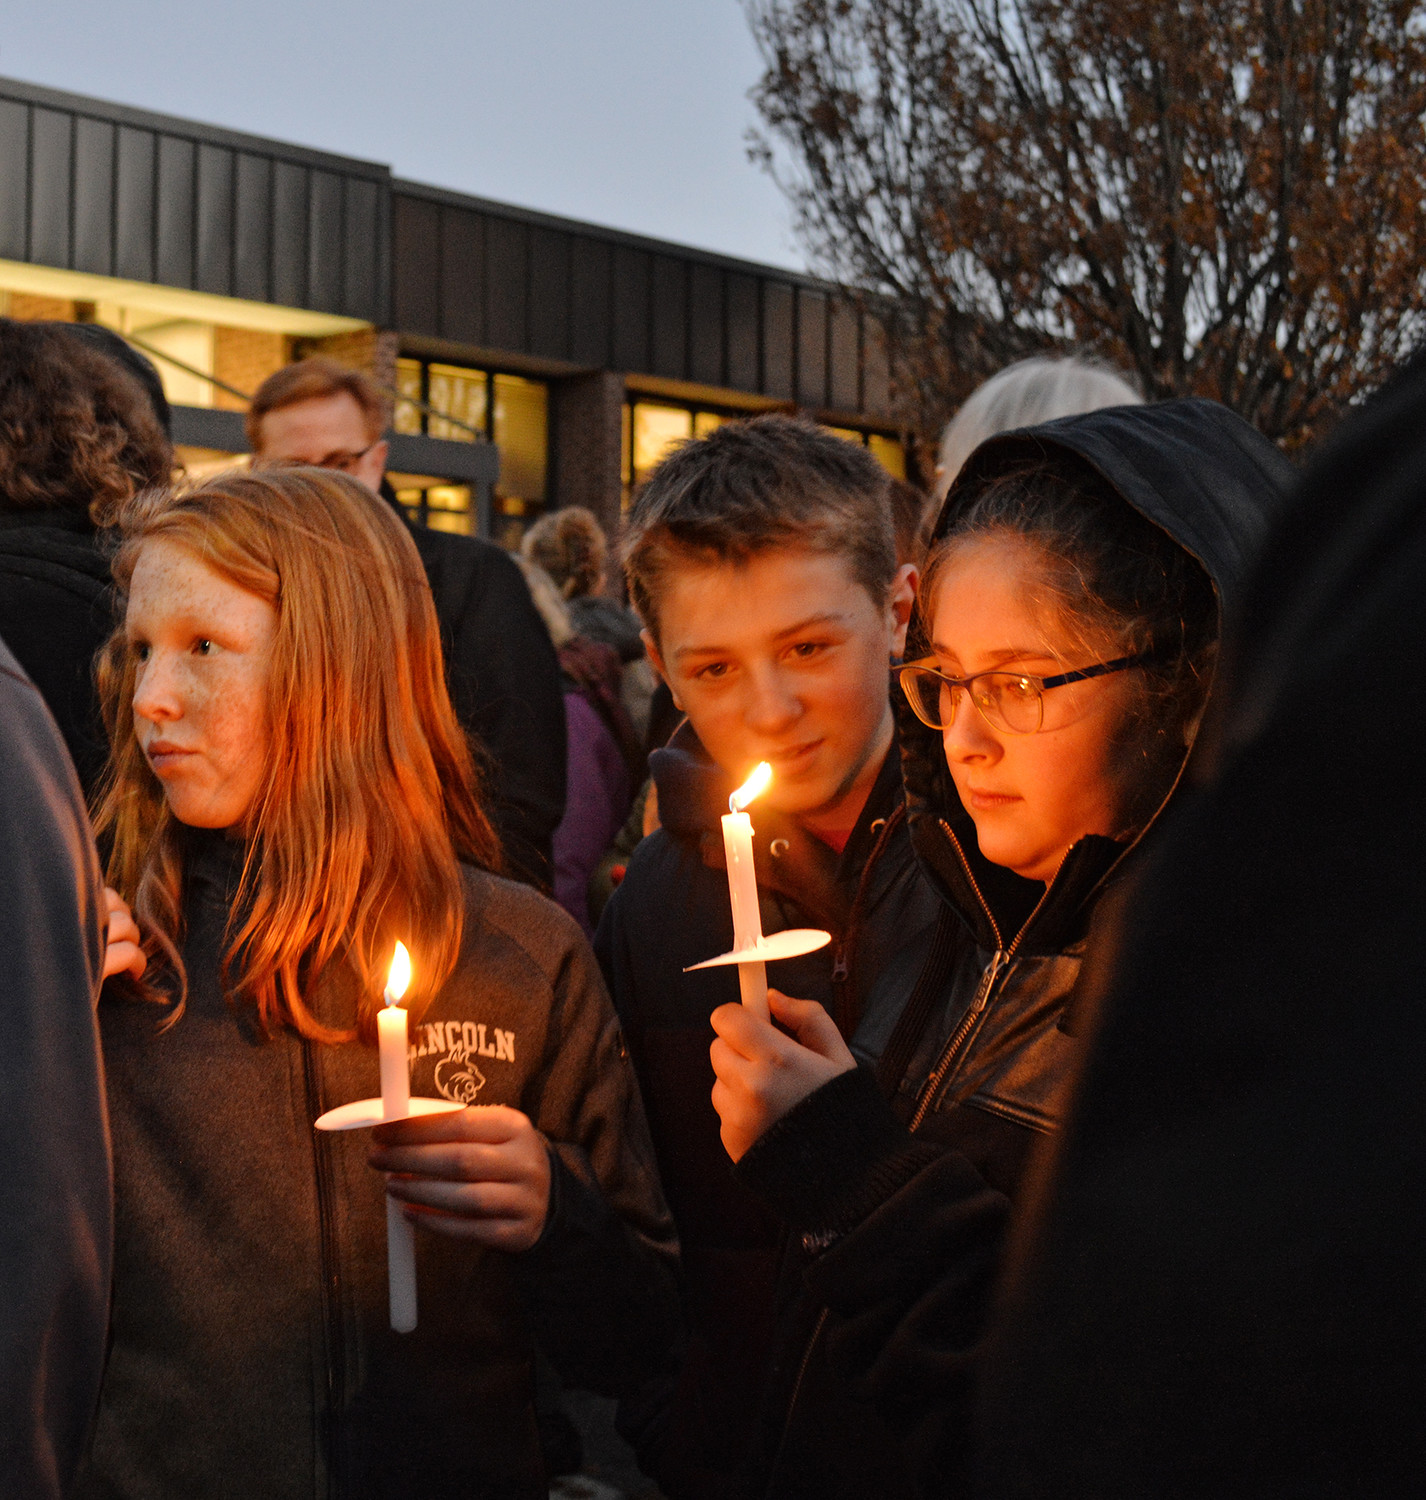 All ages participated in the candlelight vigil